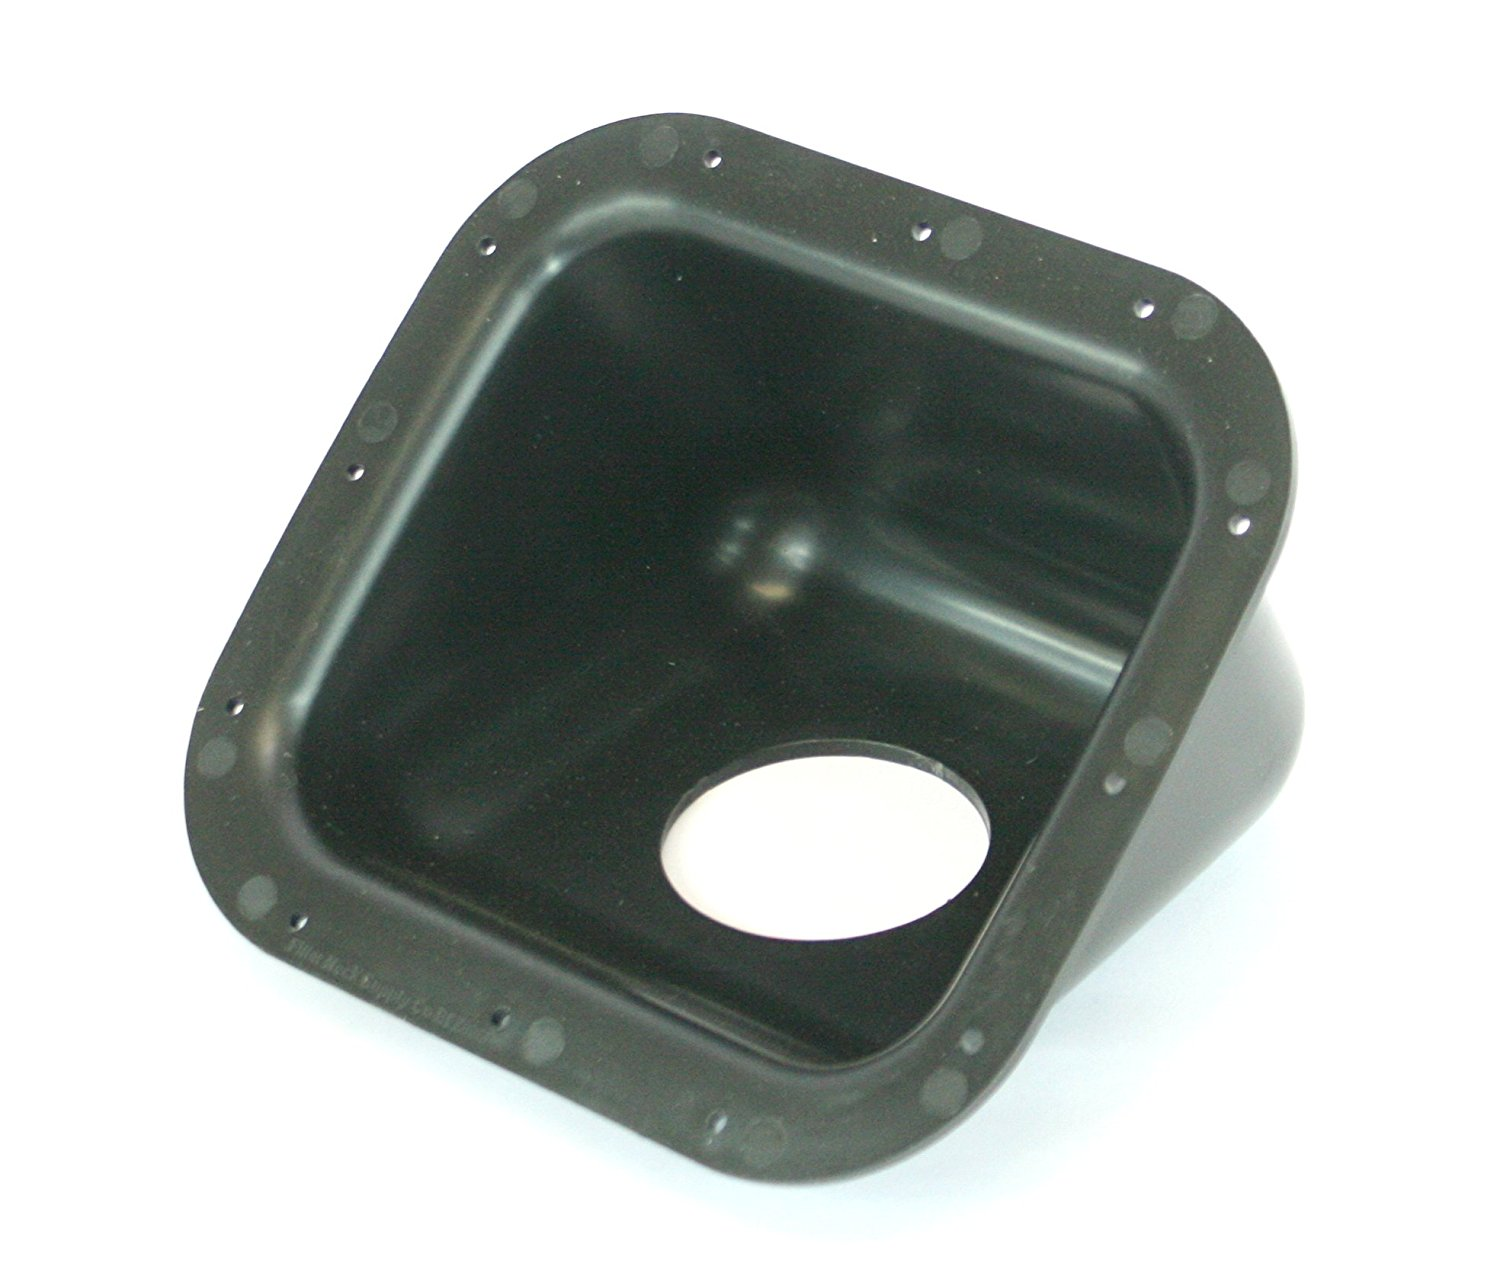 Ford Work Truck Style Square Plastic Fuel Filler Neck Housing